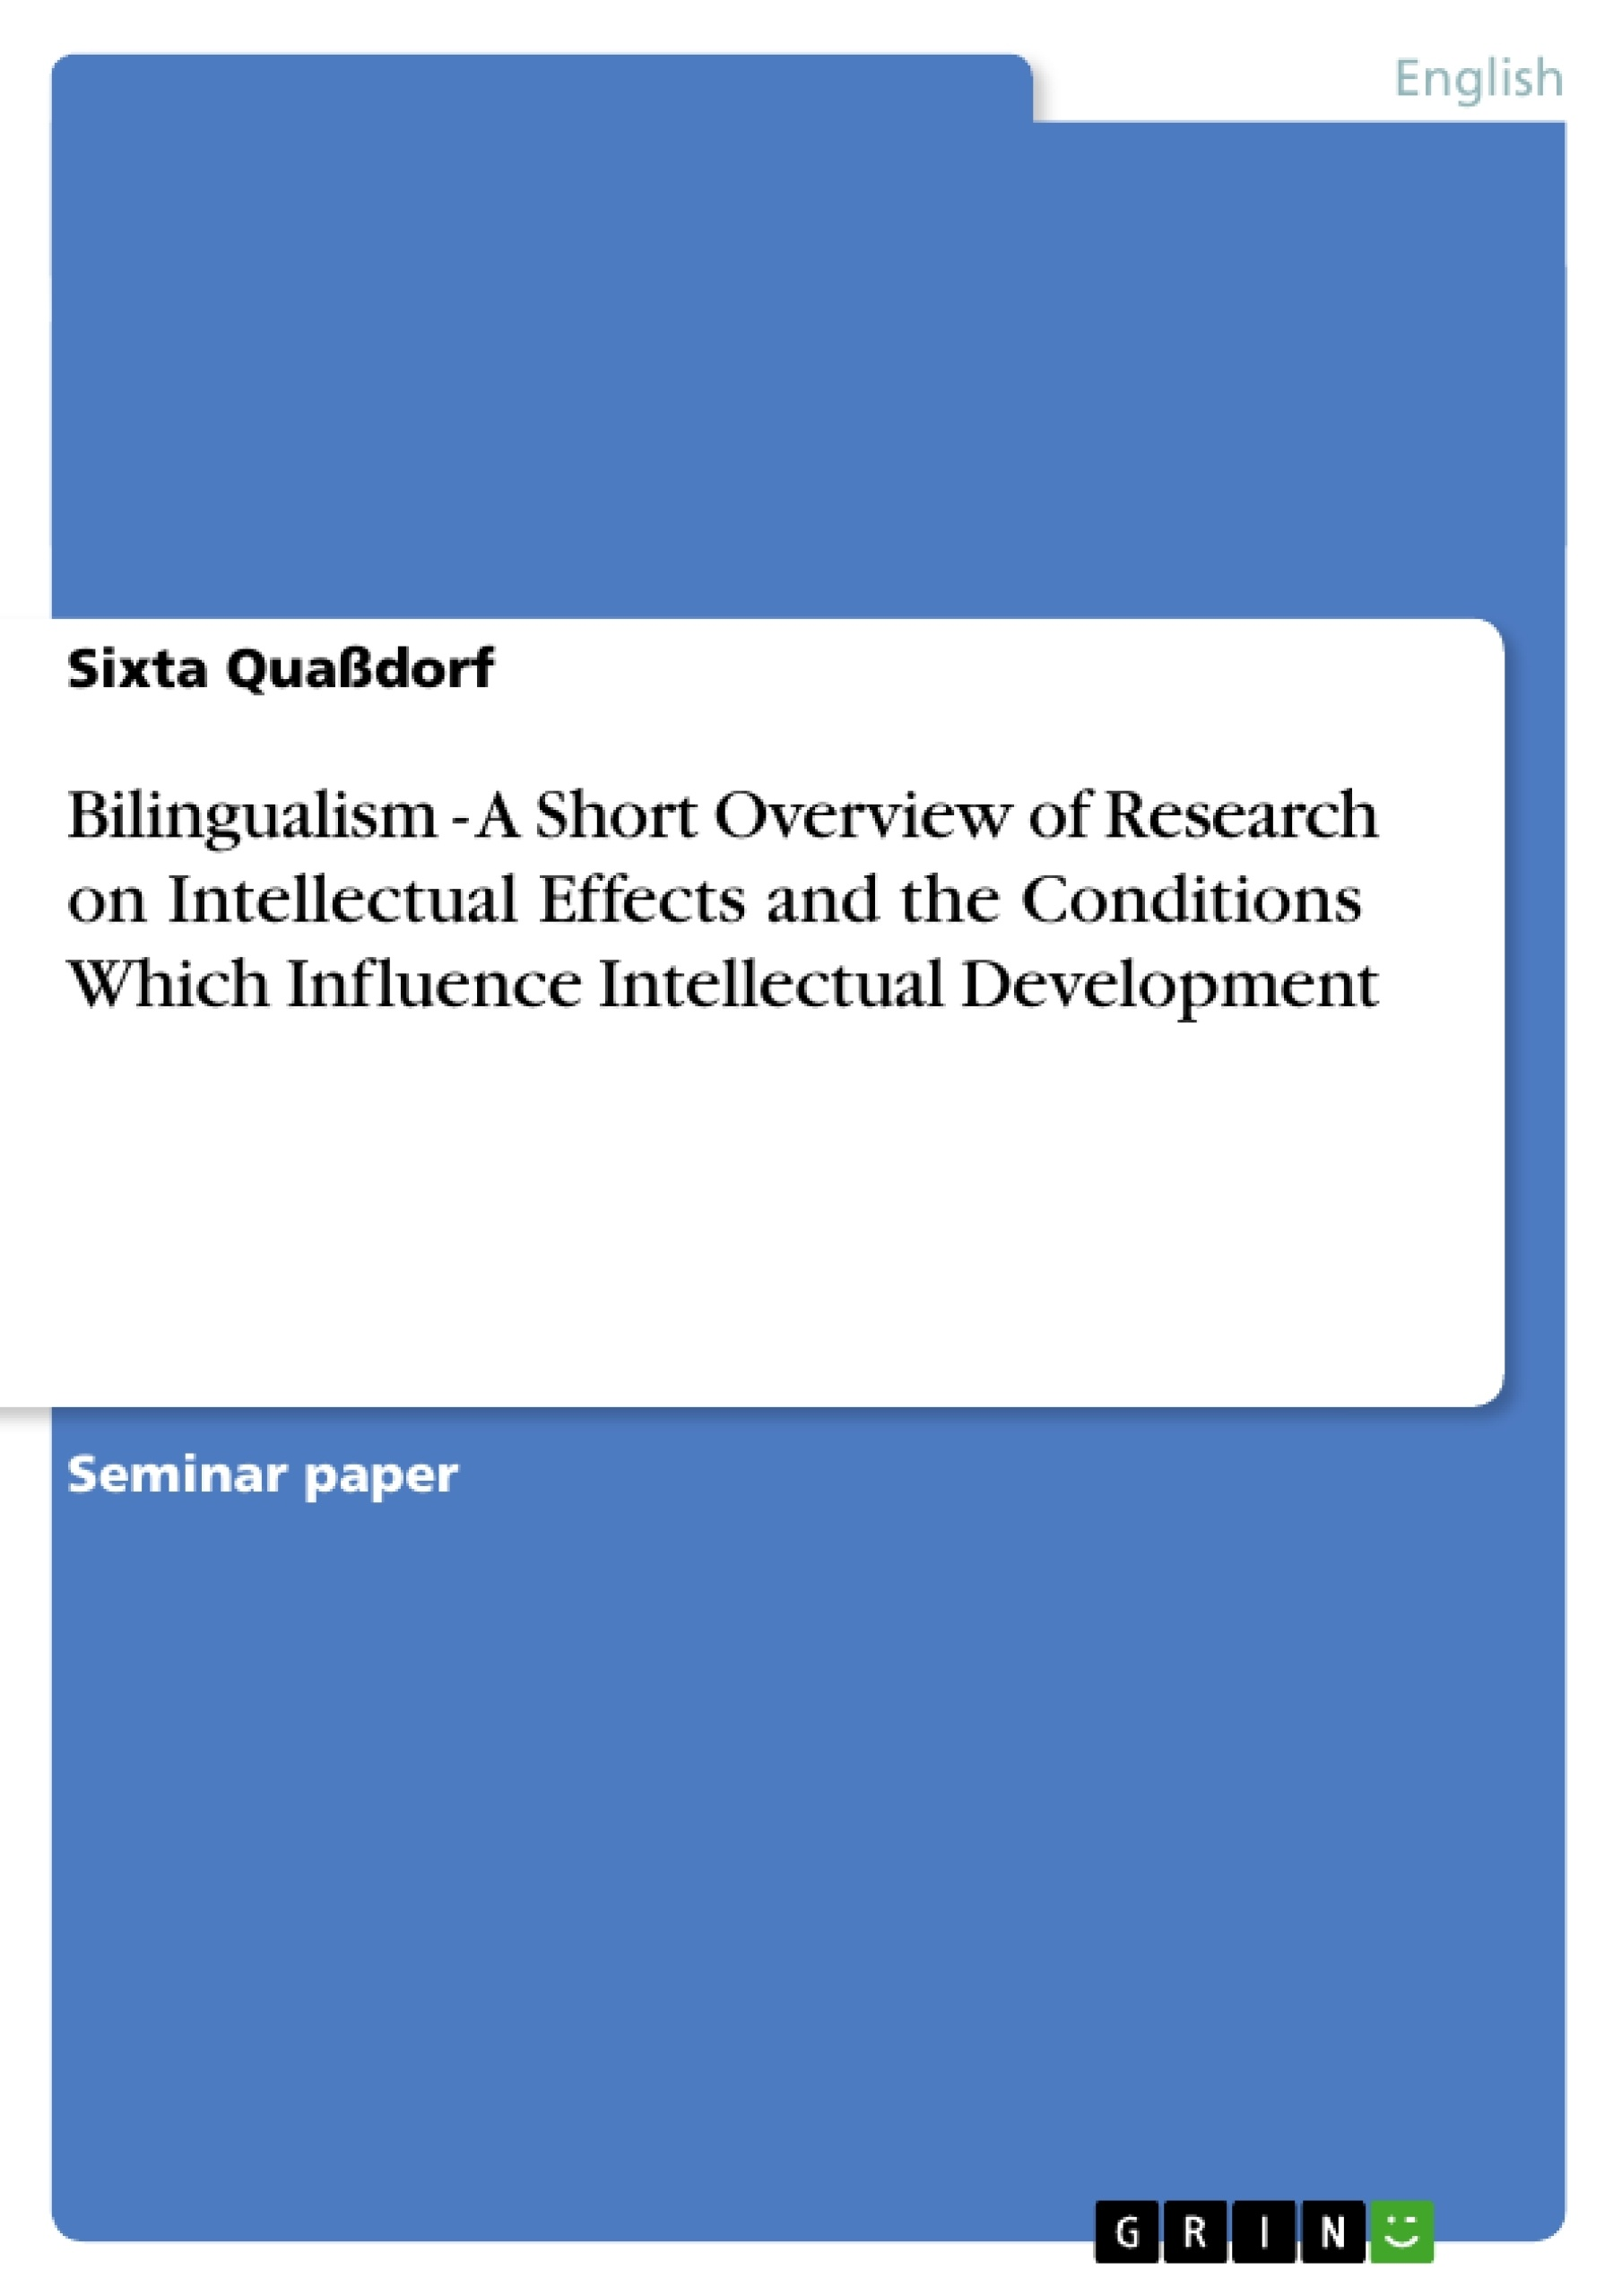 Title: Bilingualism - A Short Overview of Research on Intellectual Effects and the Conditions Which Influence Intellectual Development